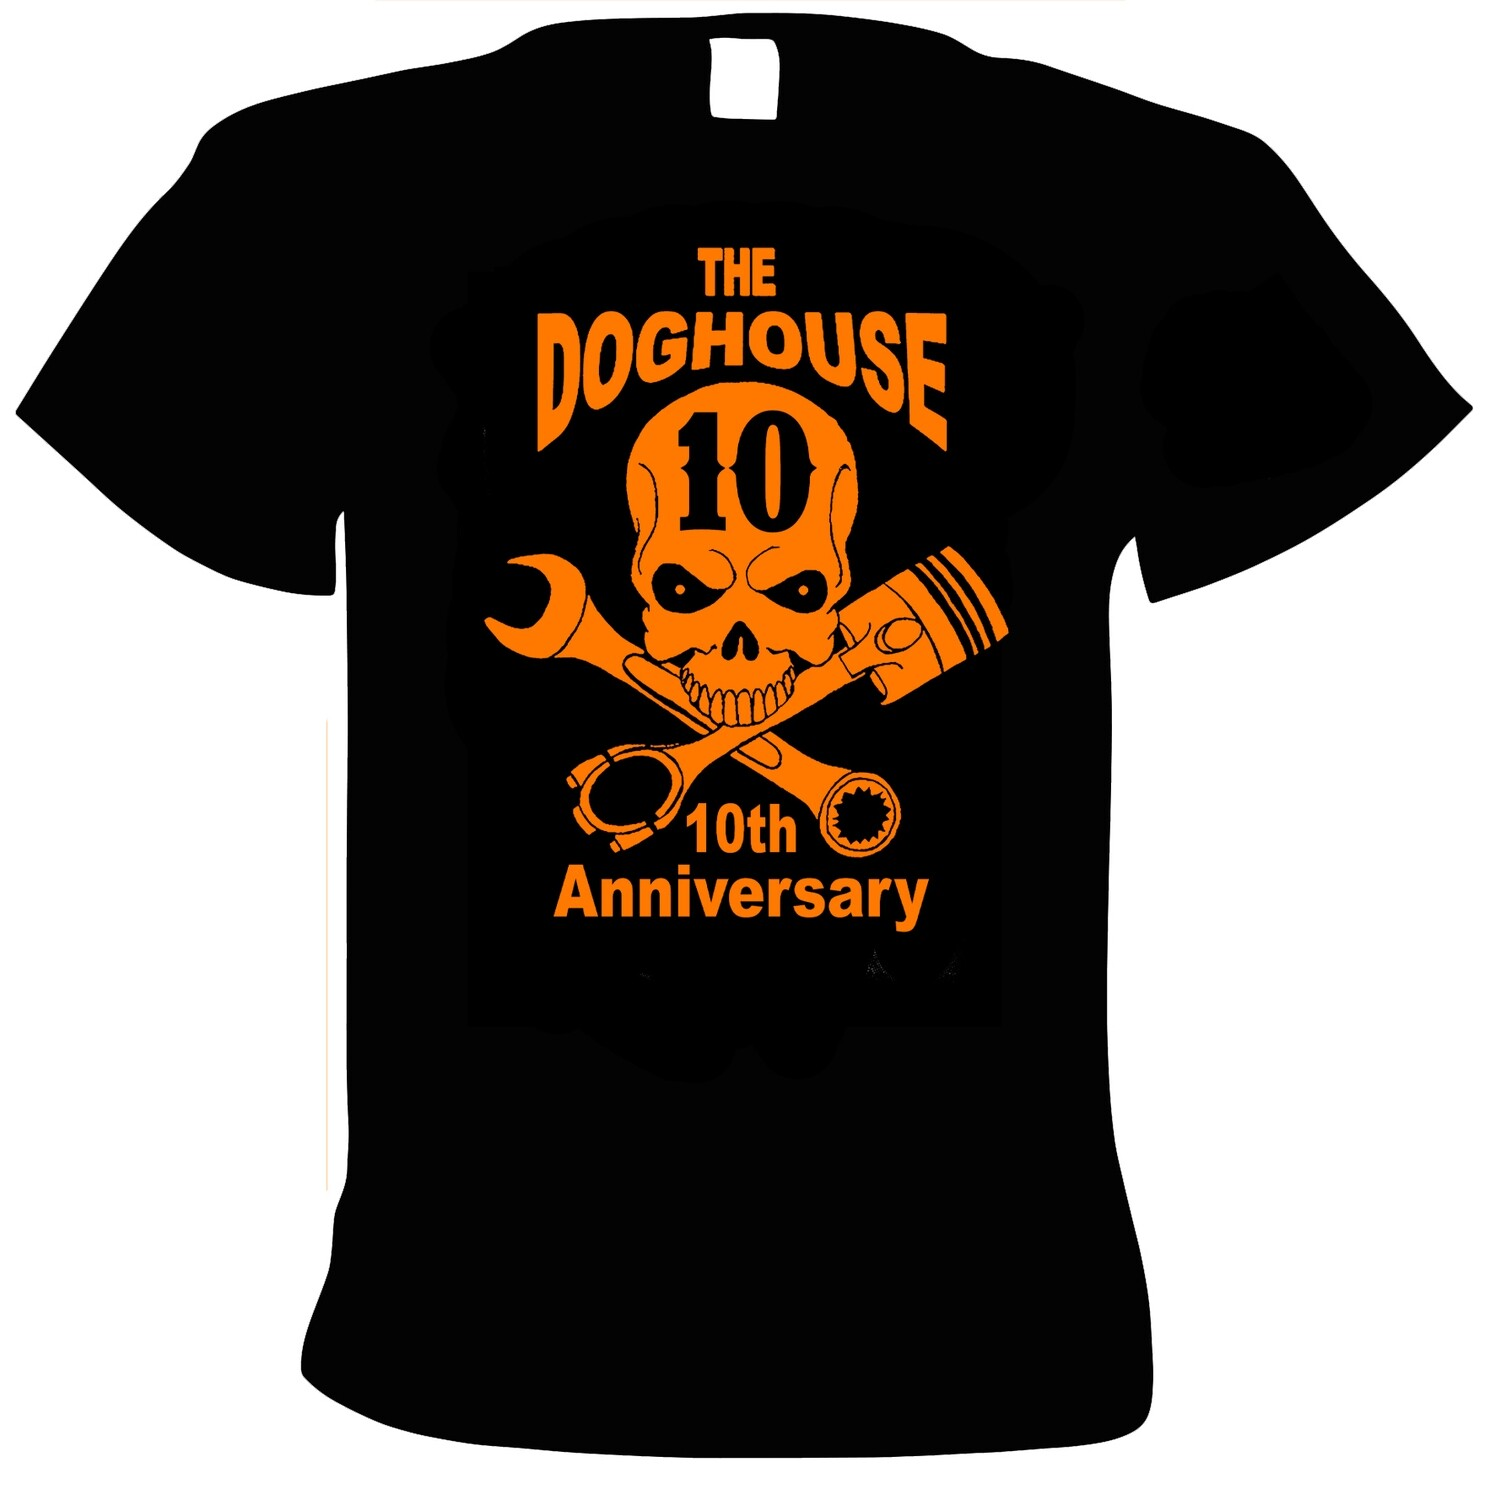 10th Anniversary gig shirt